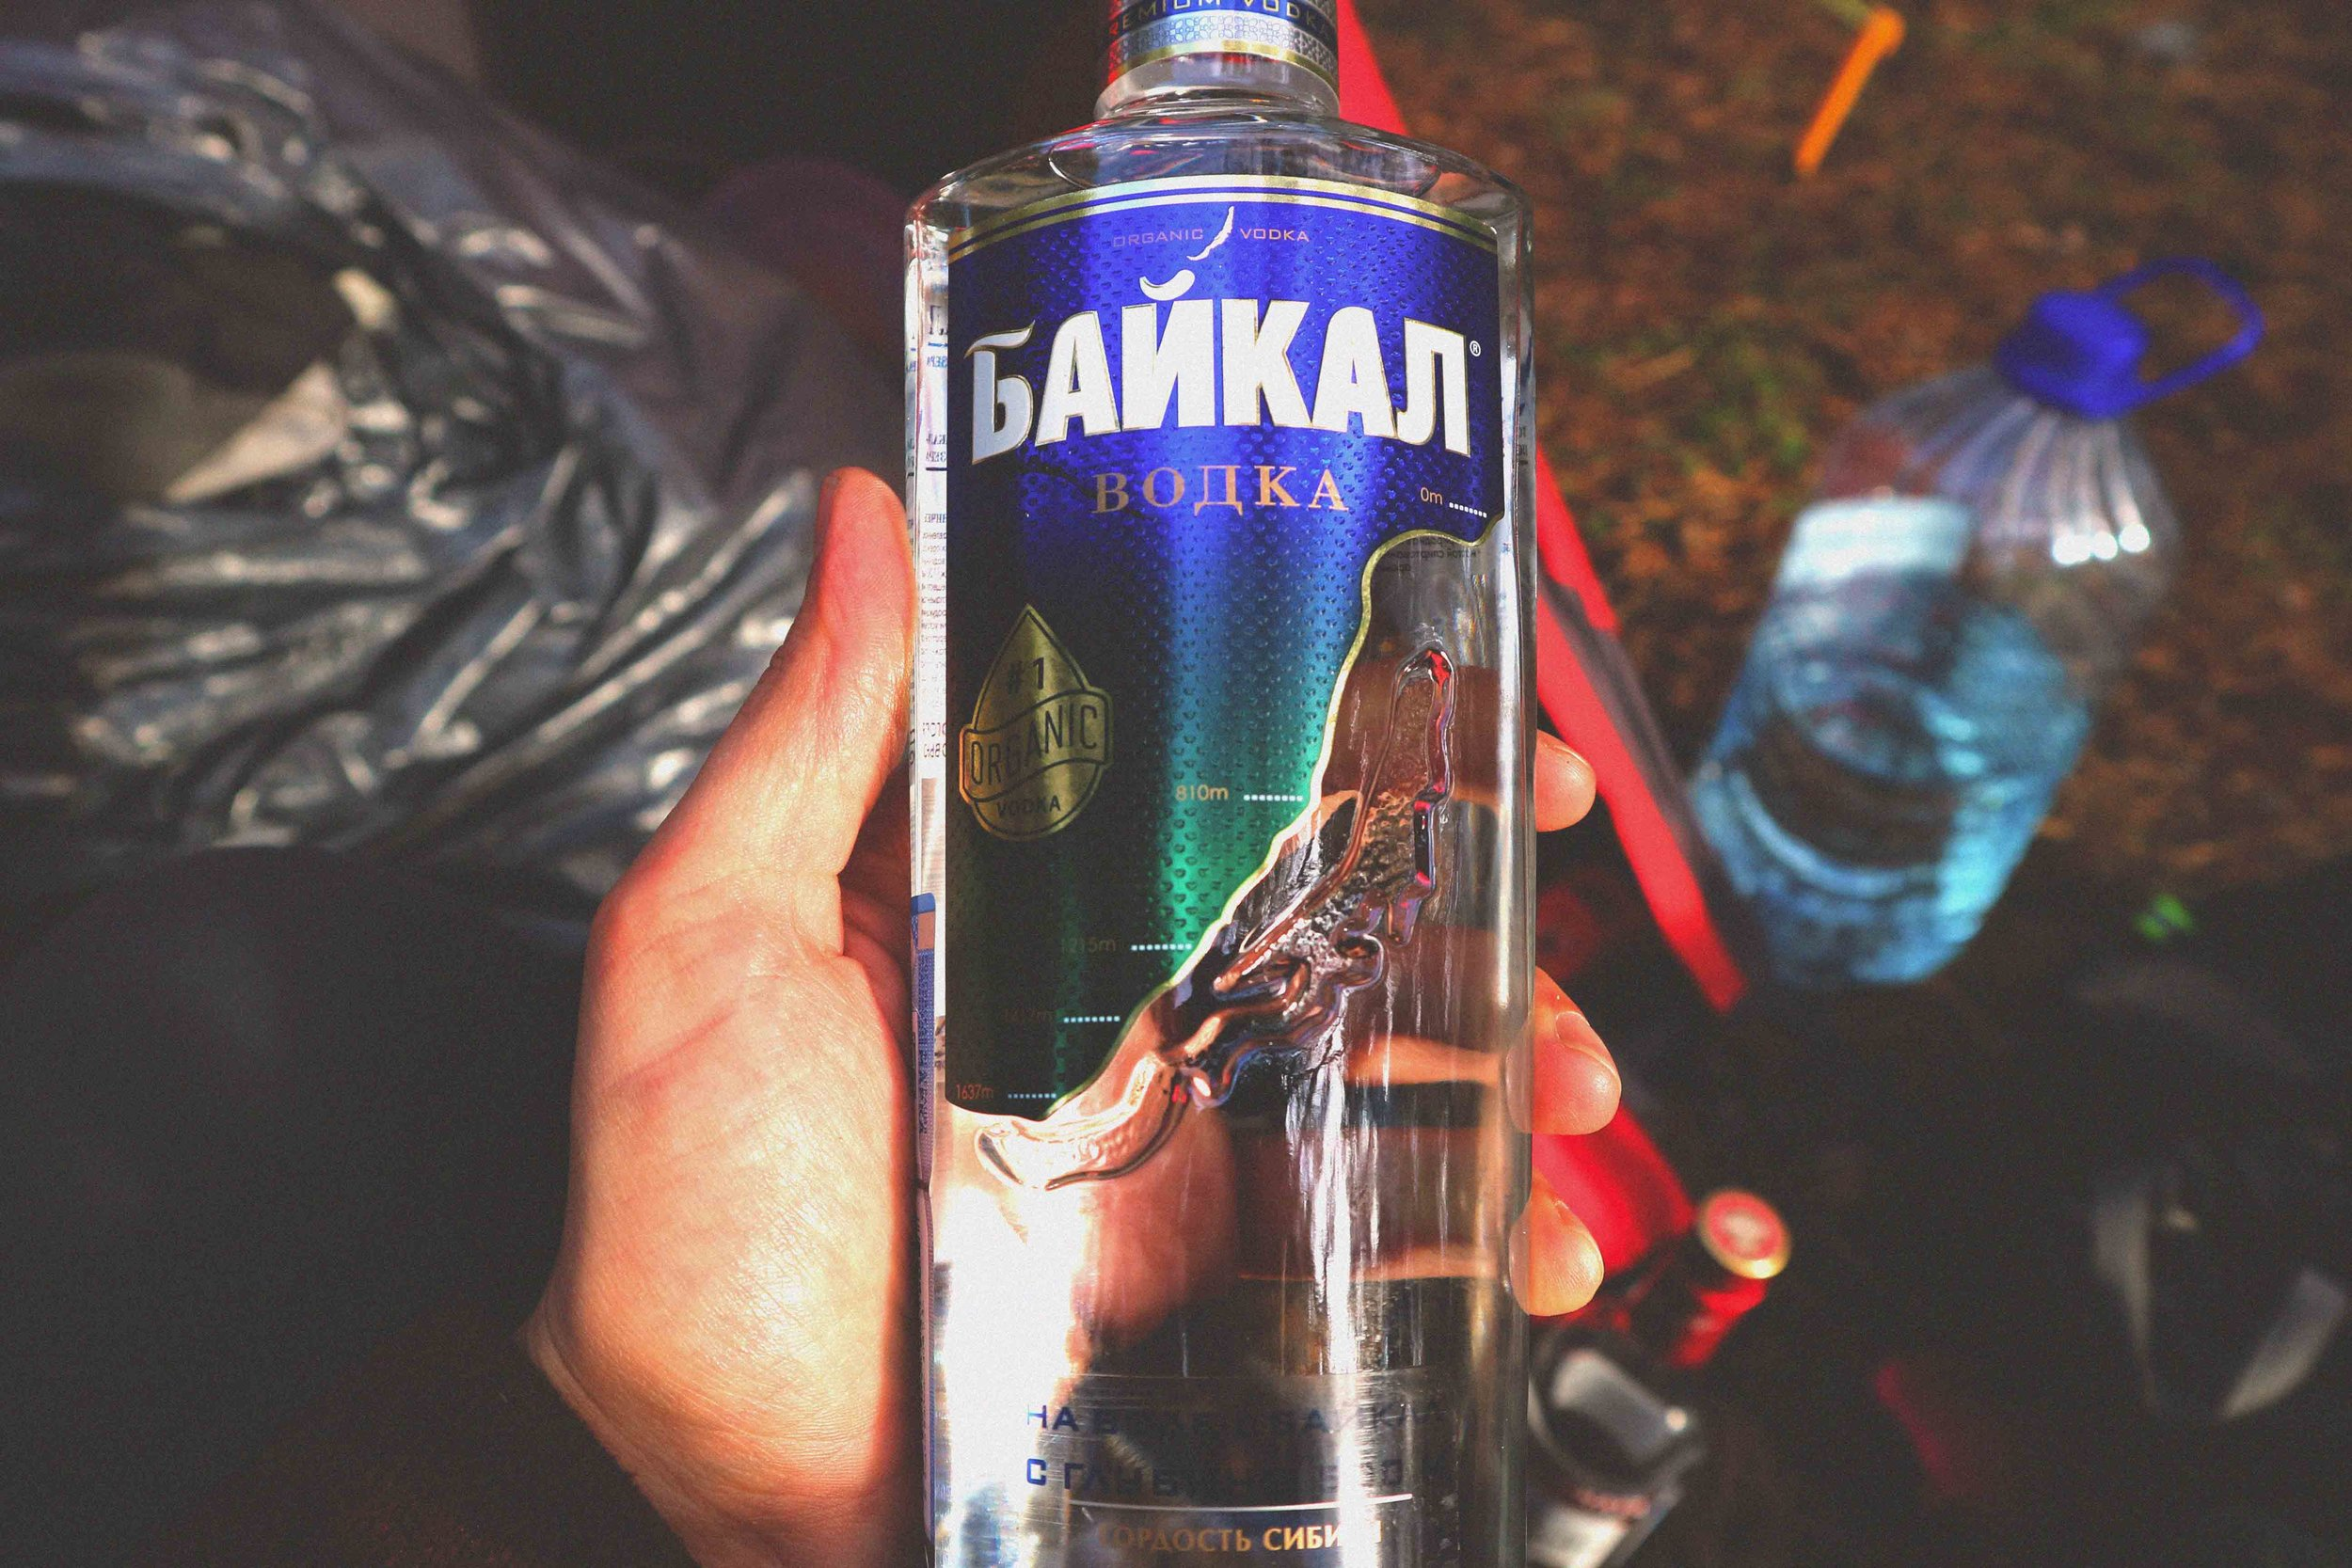 Organic lake Baikal vodka